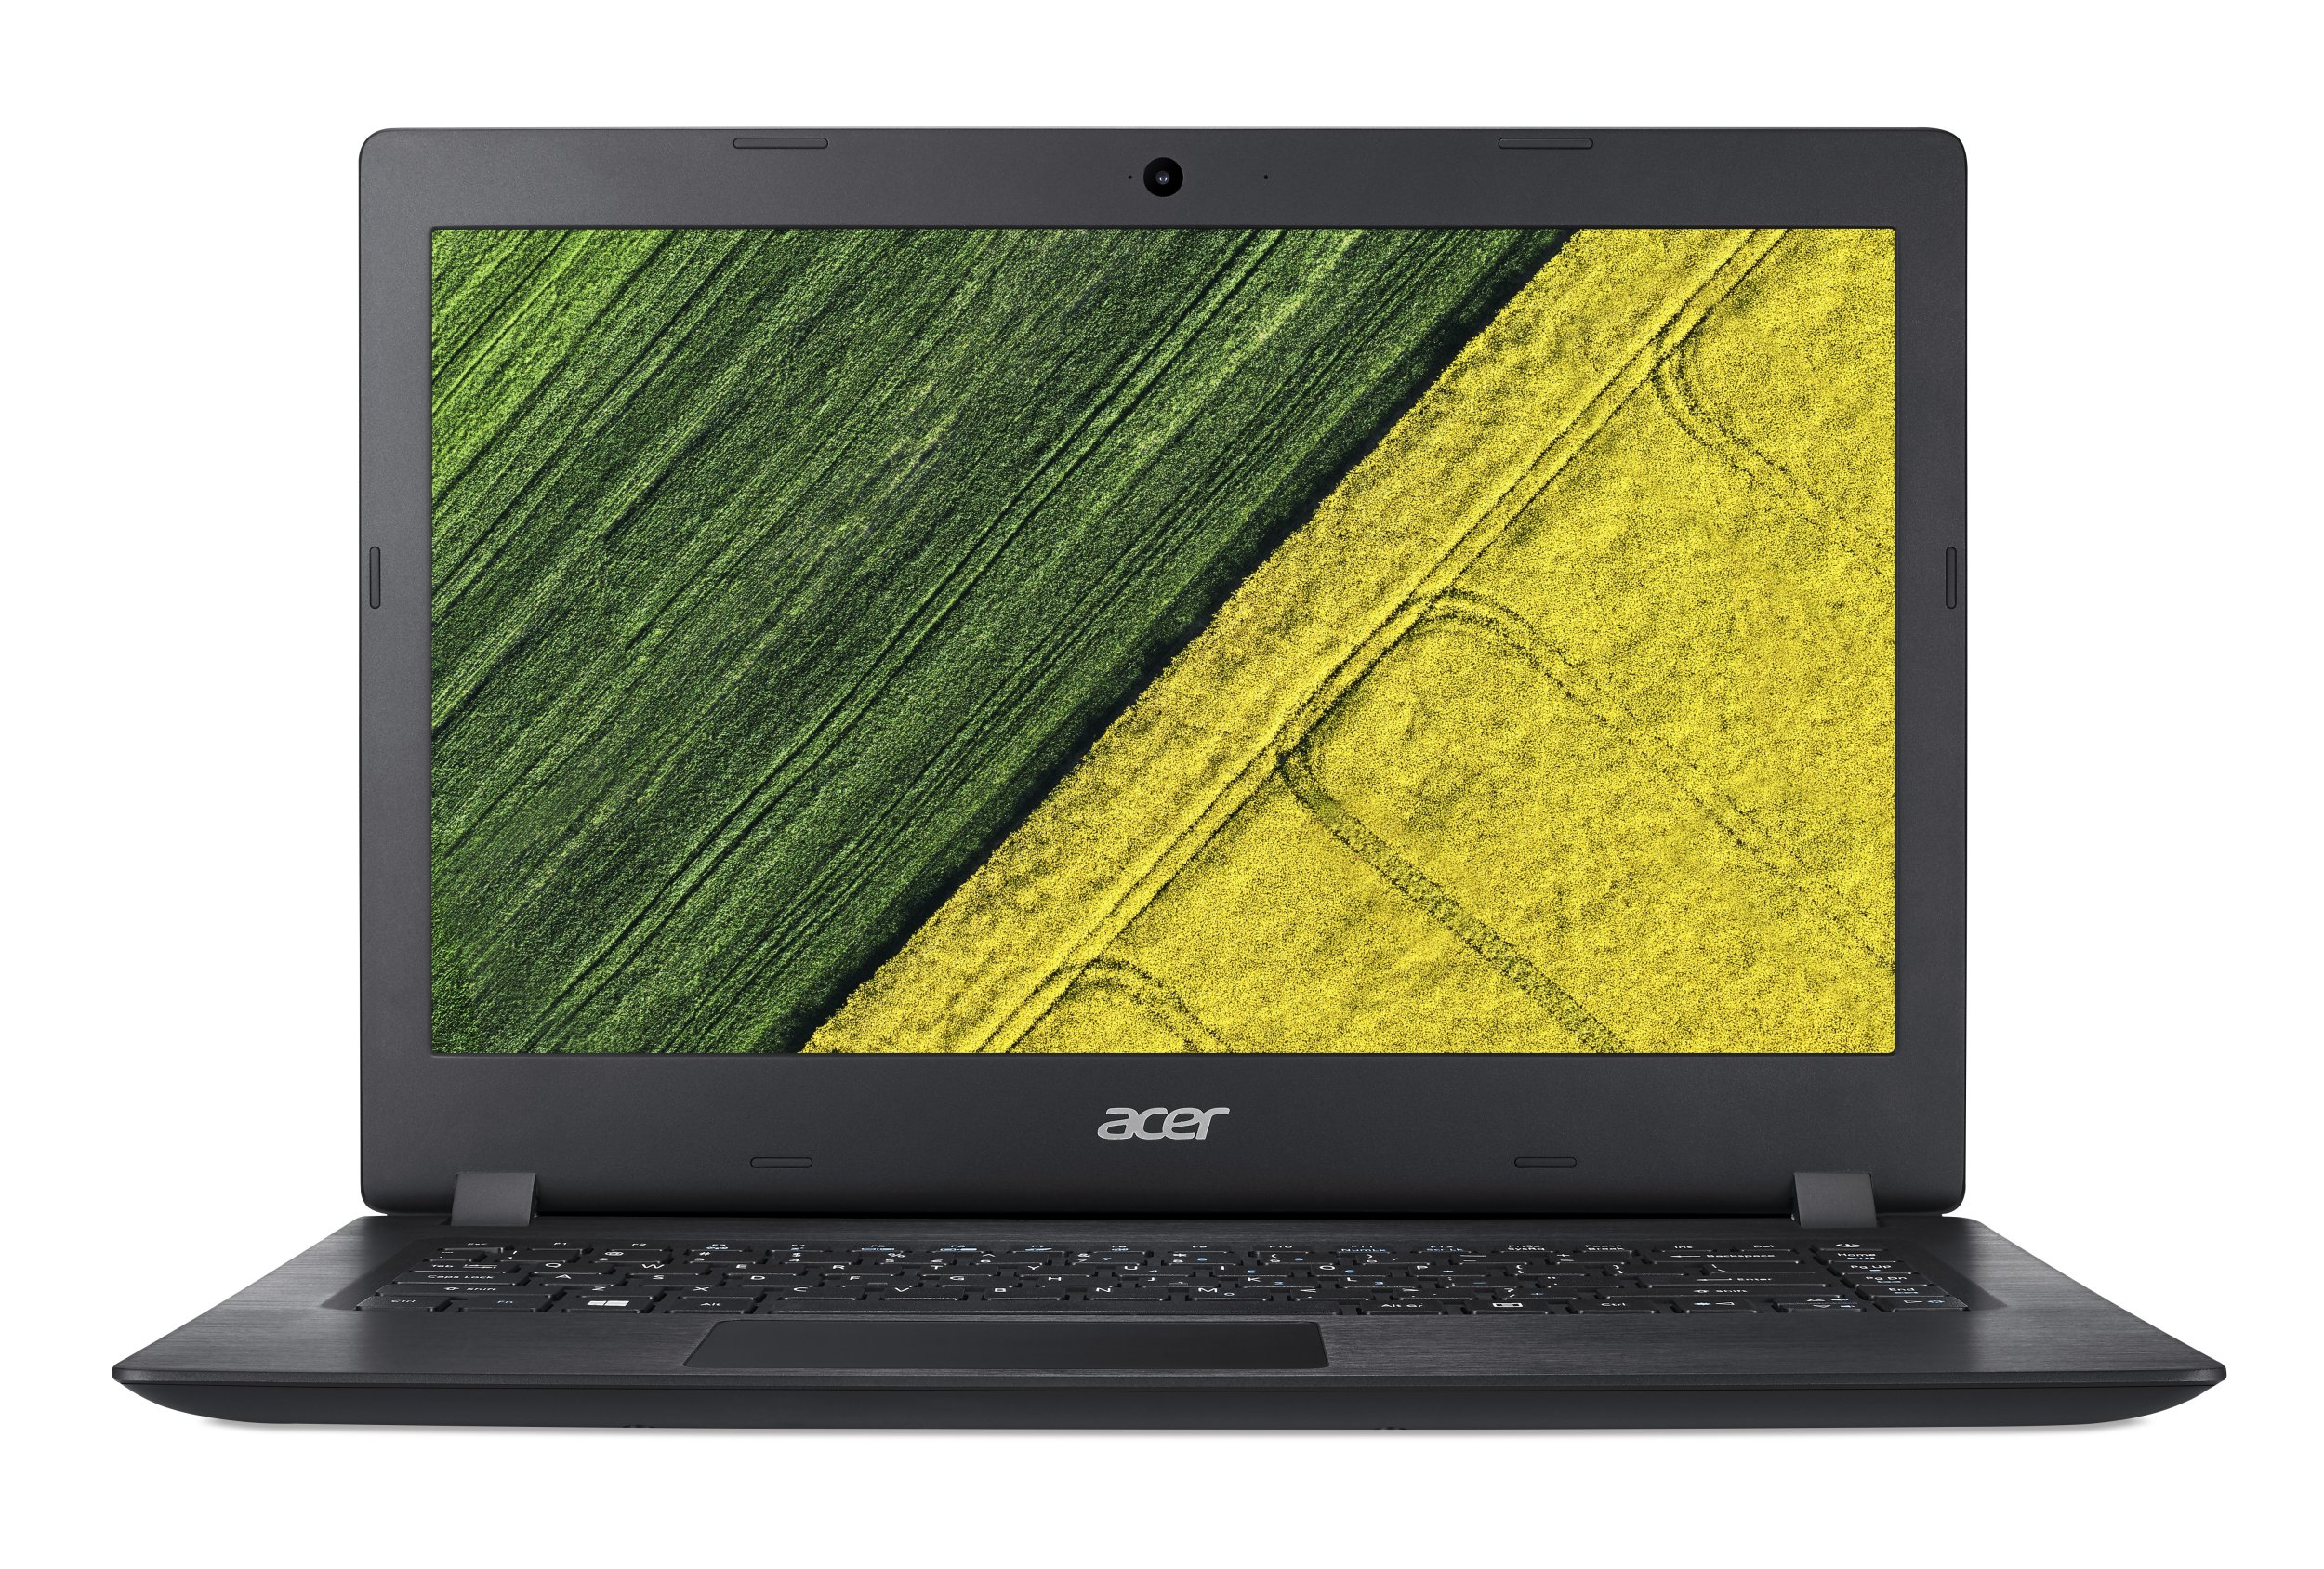 "Acer Aspire 1 (A114-31-C1HU) Celeron N3350/4GB+N/A/eMMC 32GB+N/A/HD Graphics/14"" HD matný/BT/W10 Home/Black"